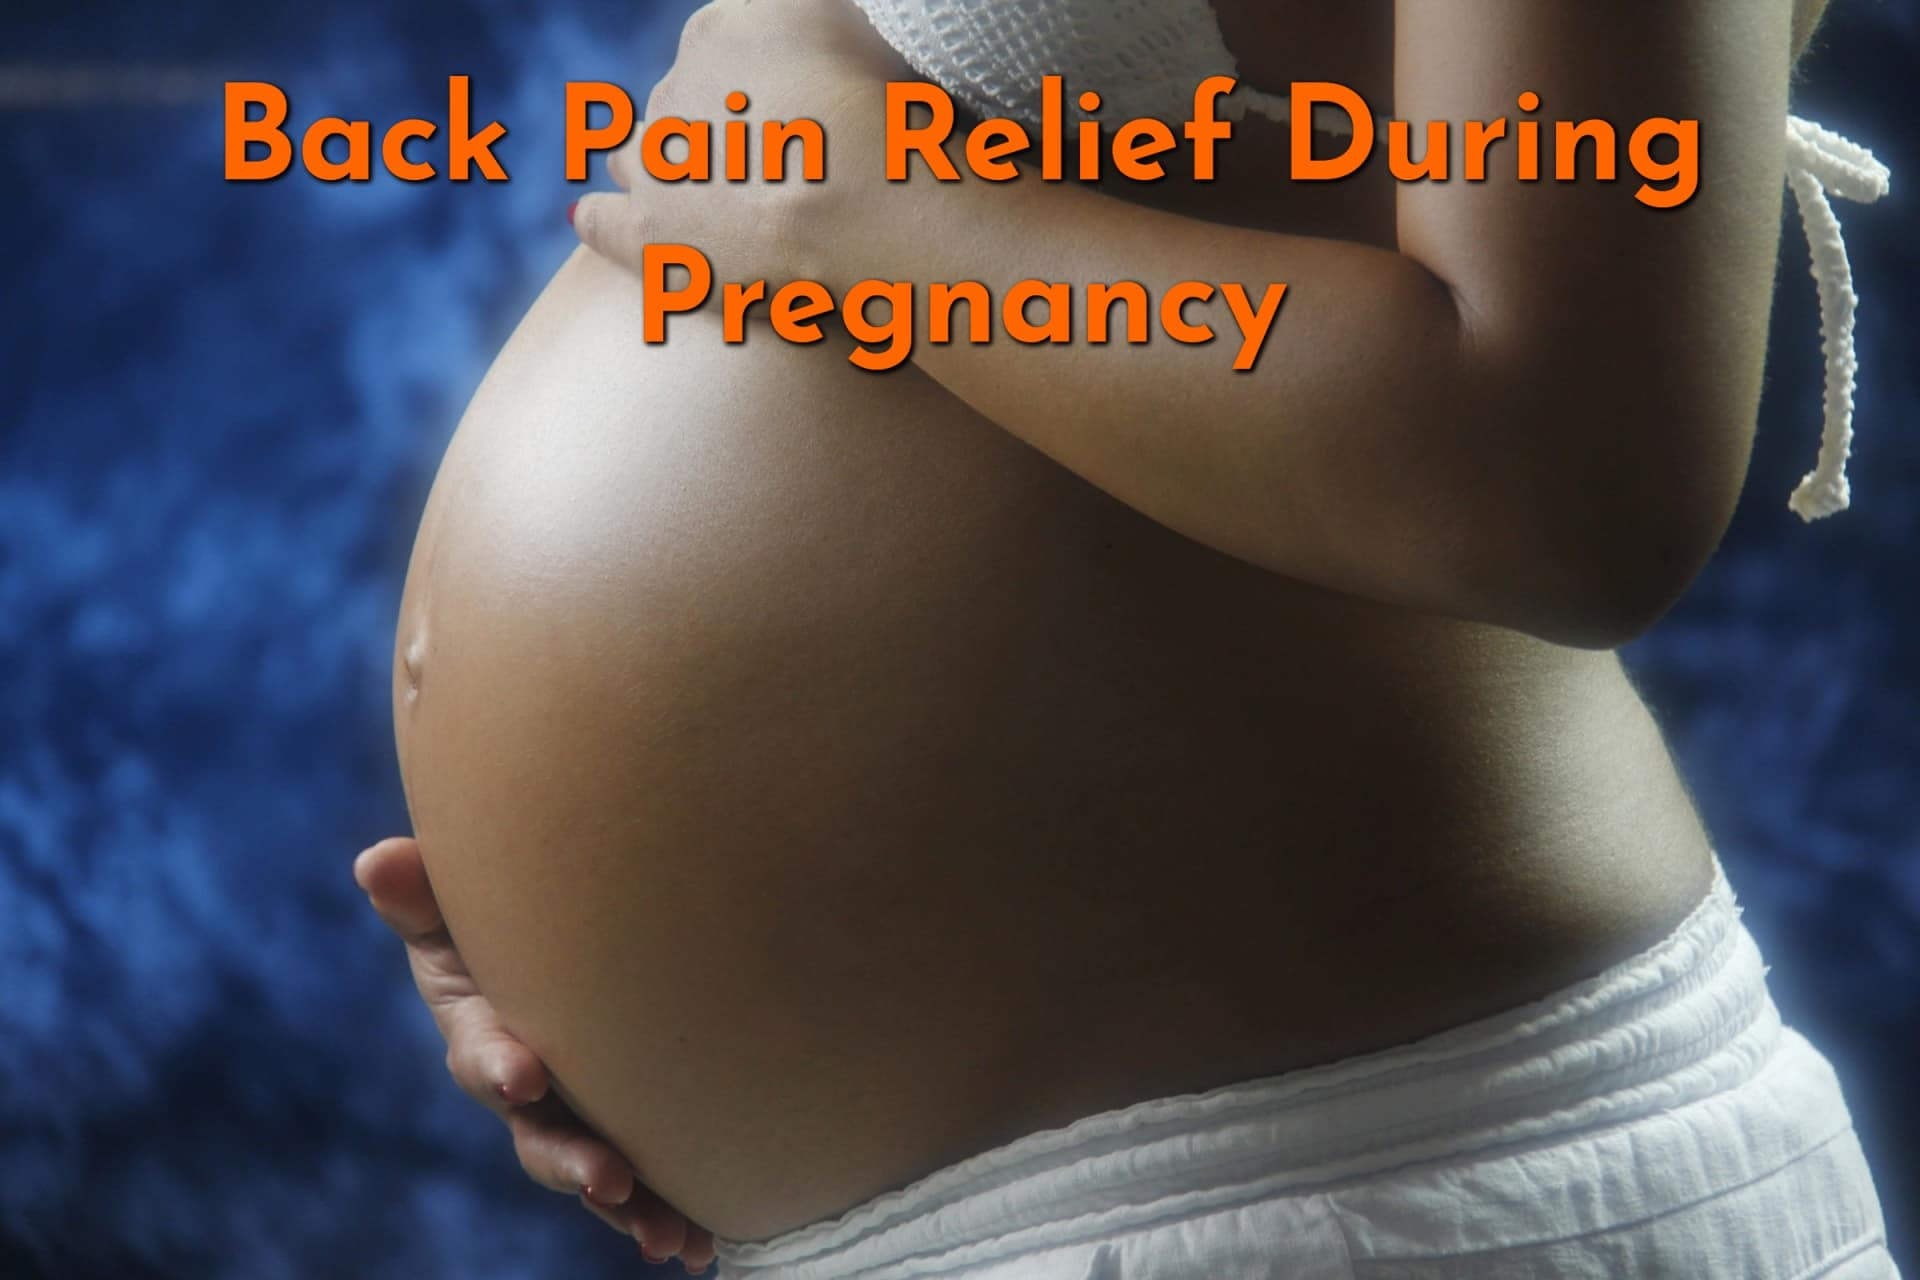 Safe and Effective Back Pain Relief During Pregnancy